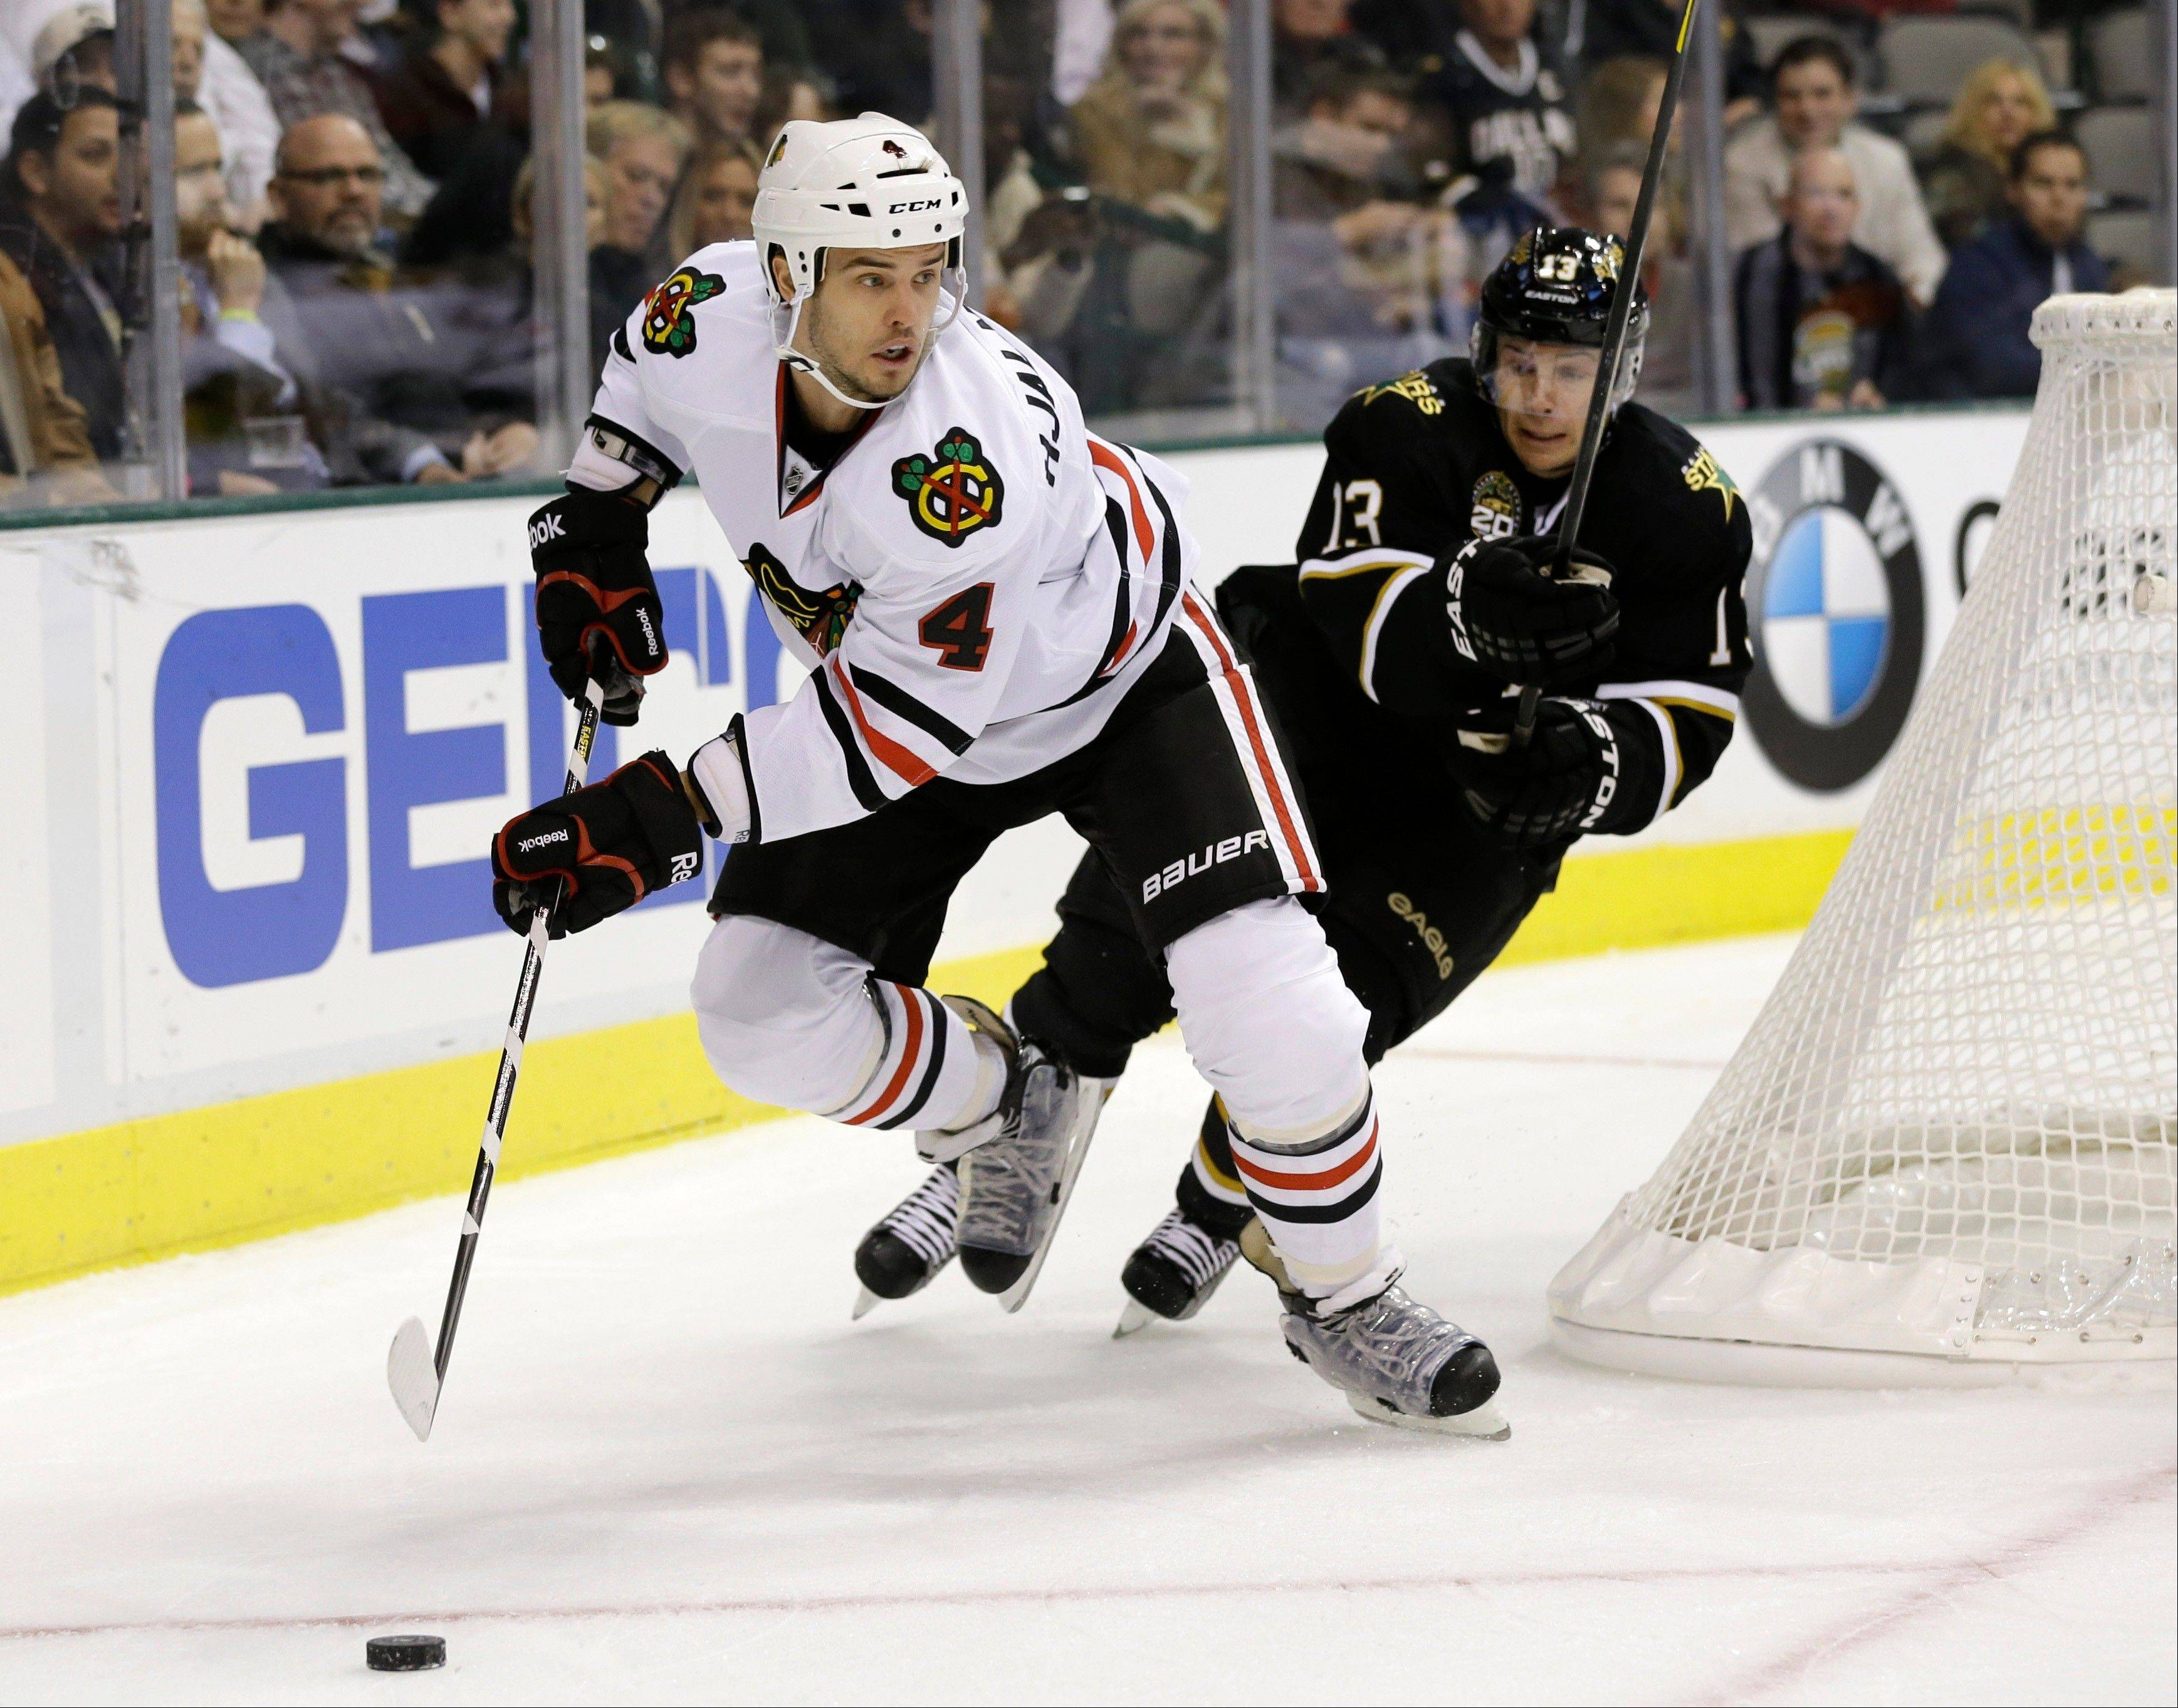 Blackhawks defenseman Niklas Hjalmarsson has agreed to a 5-year contract extension with the Hawks.